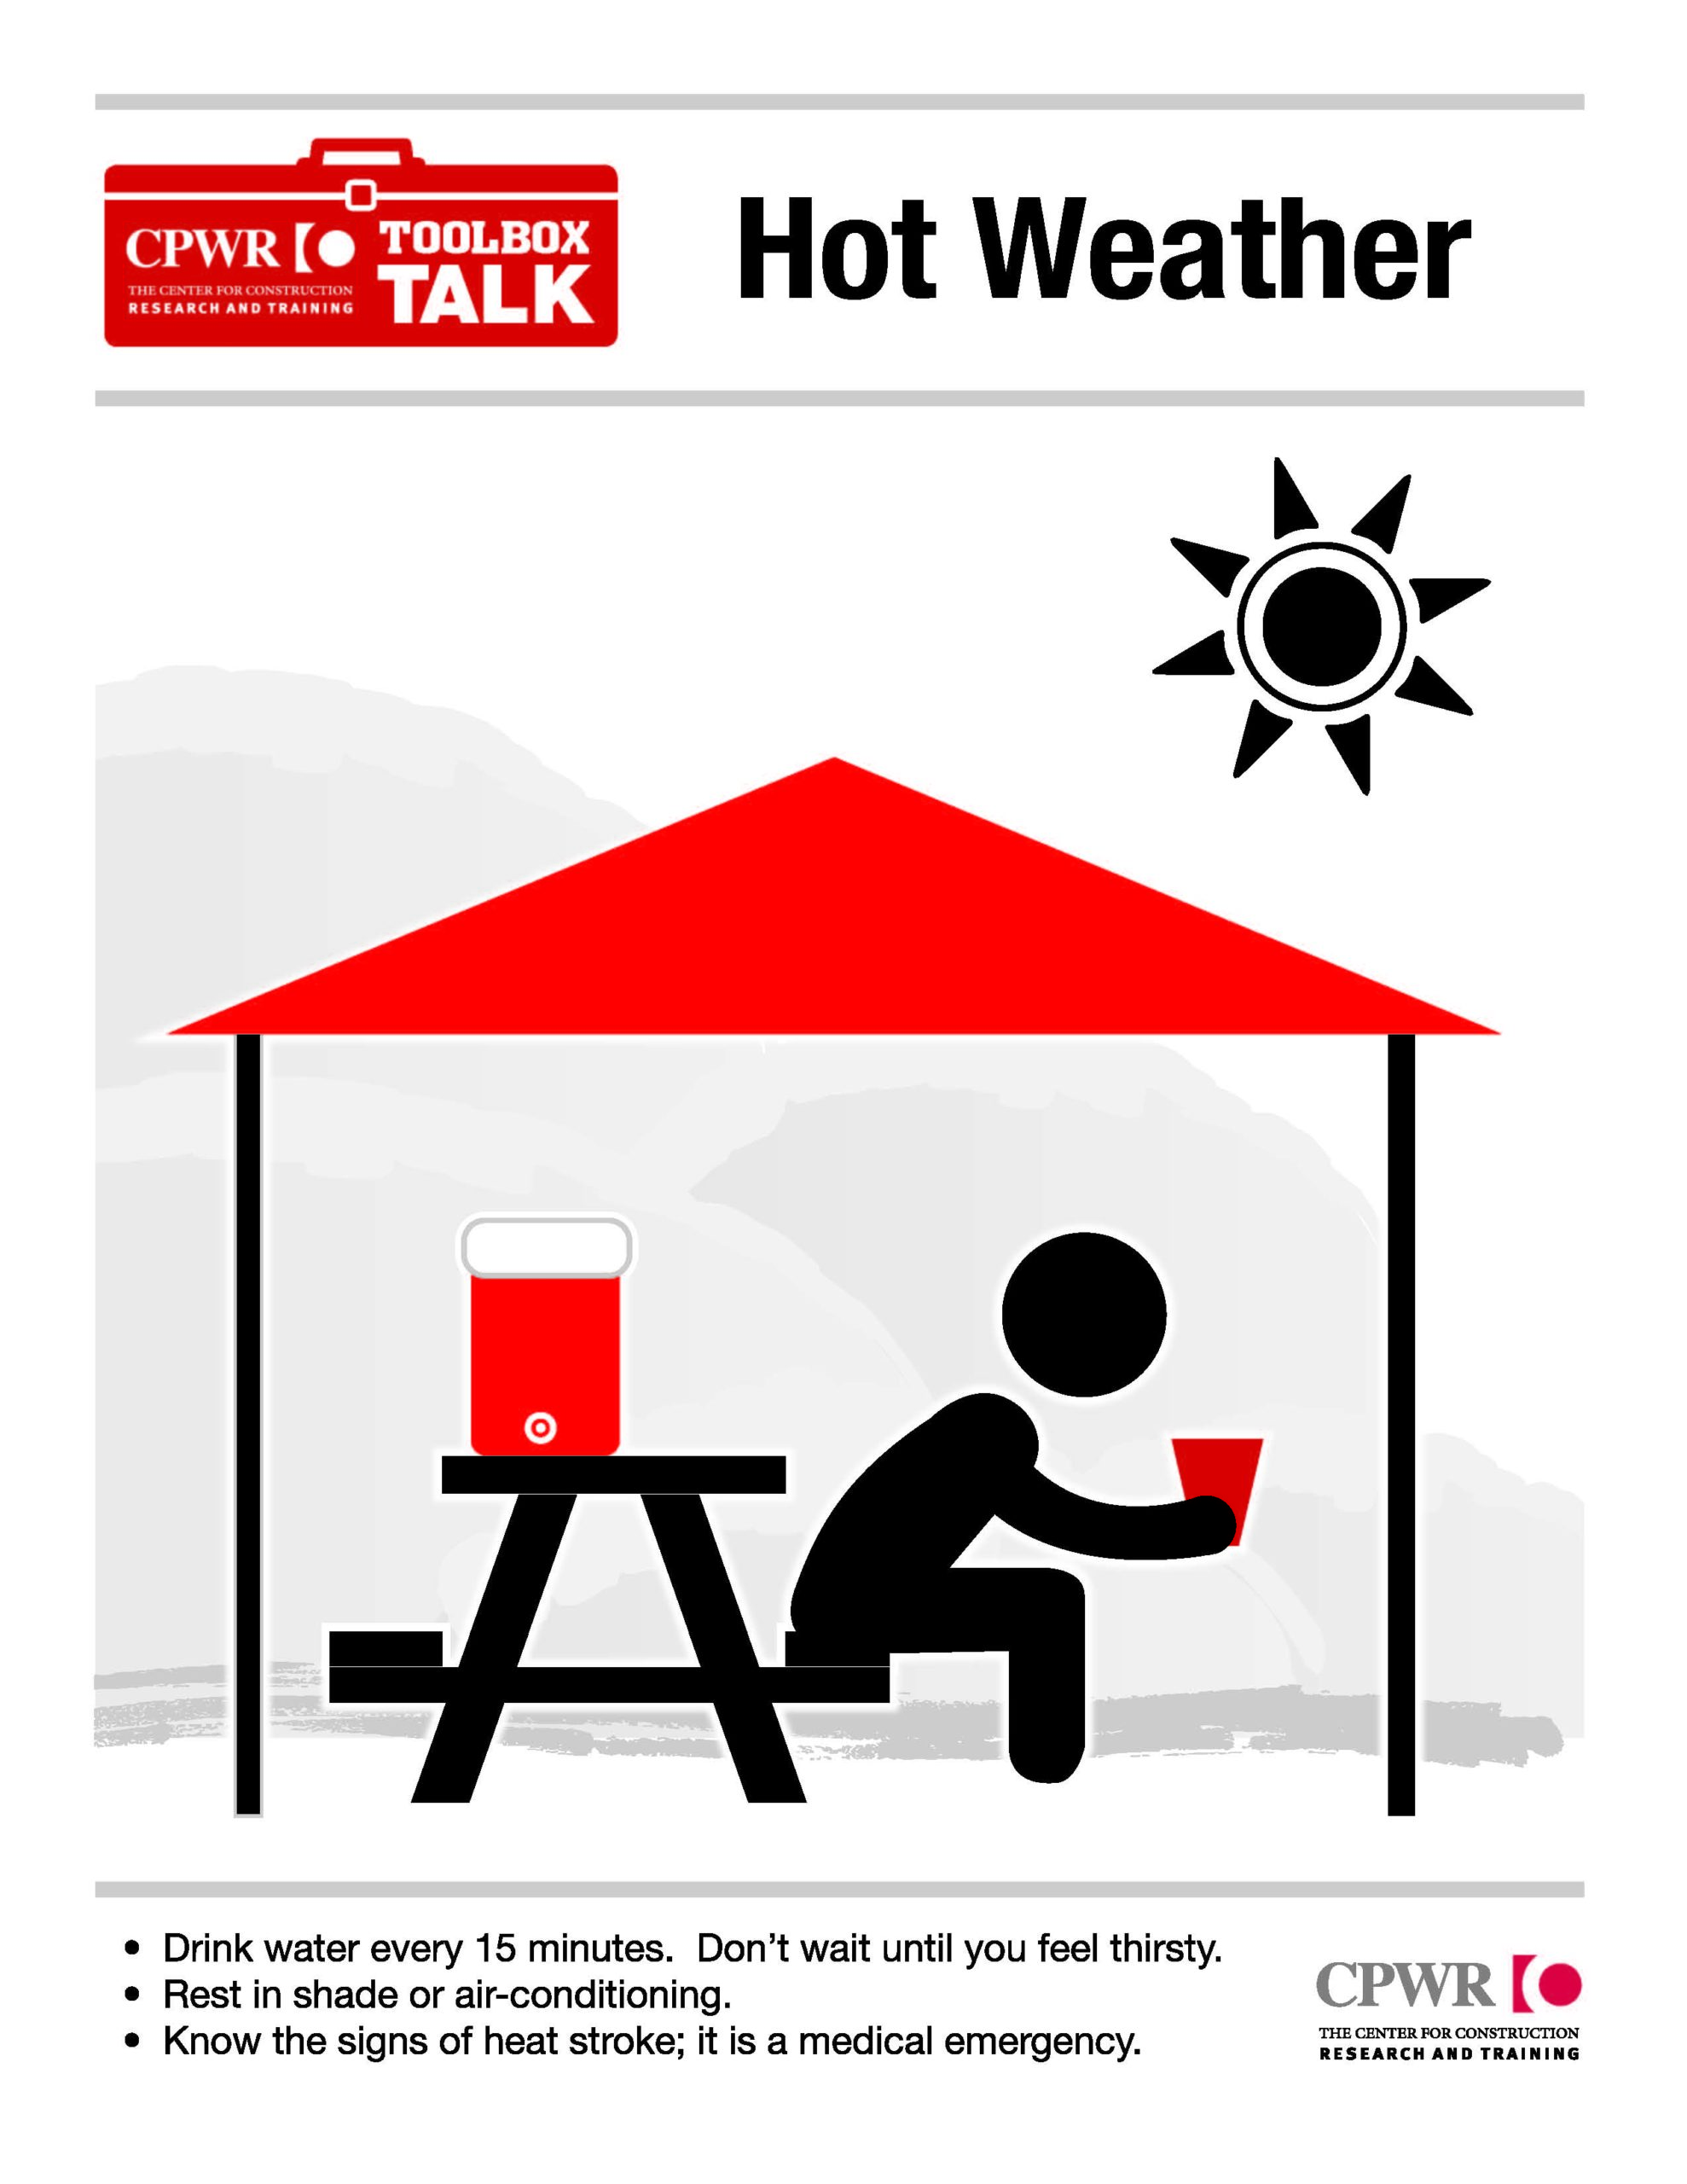 CPWR_Hot_Weather_CPWRlogo